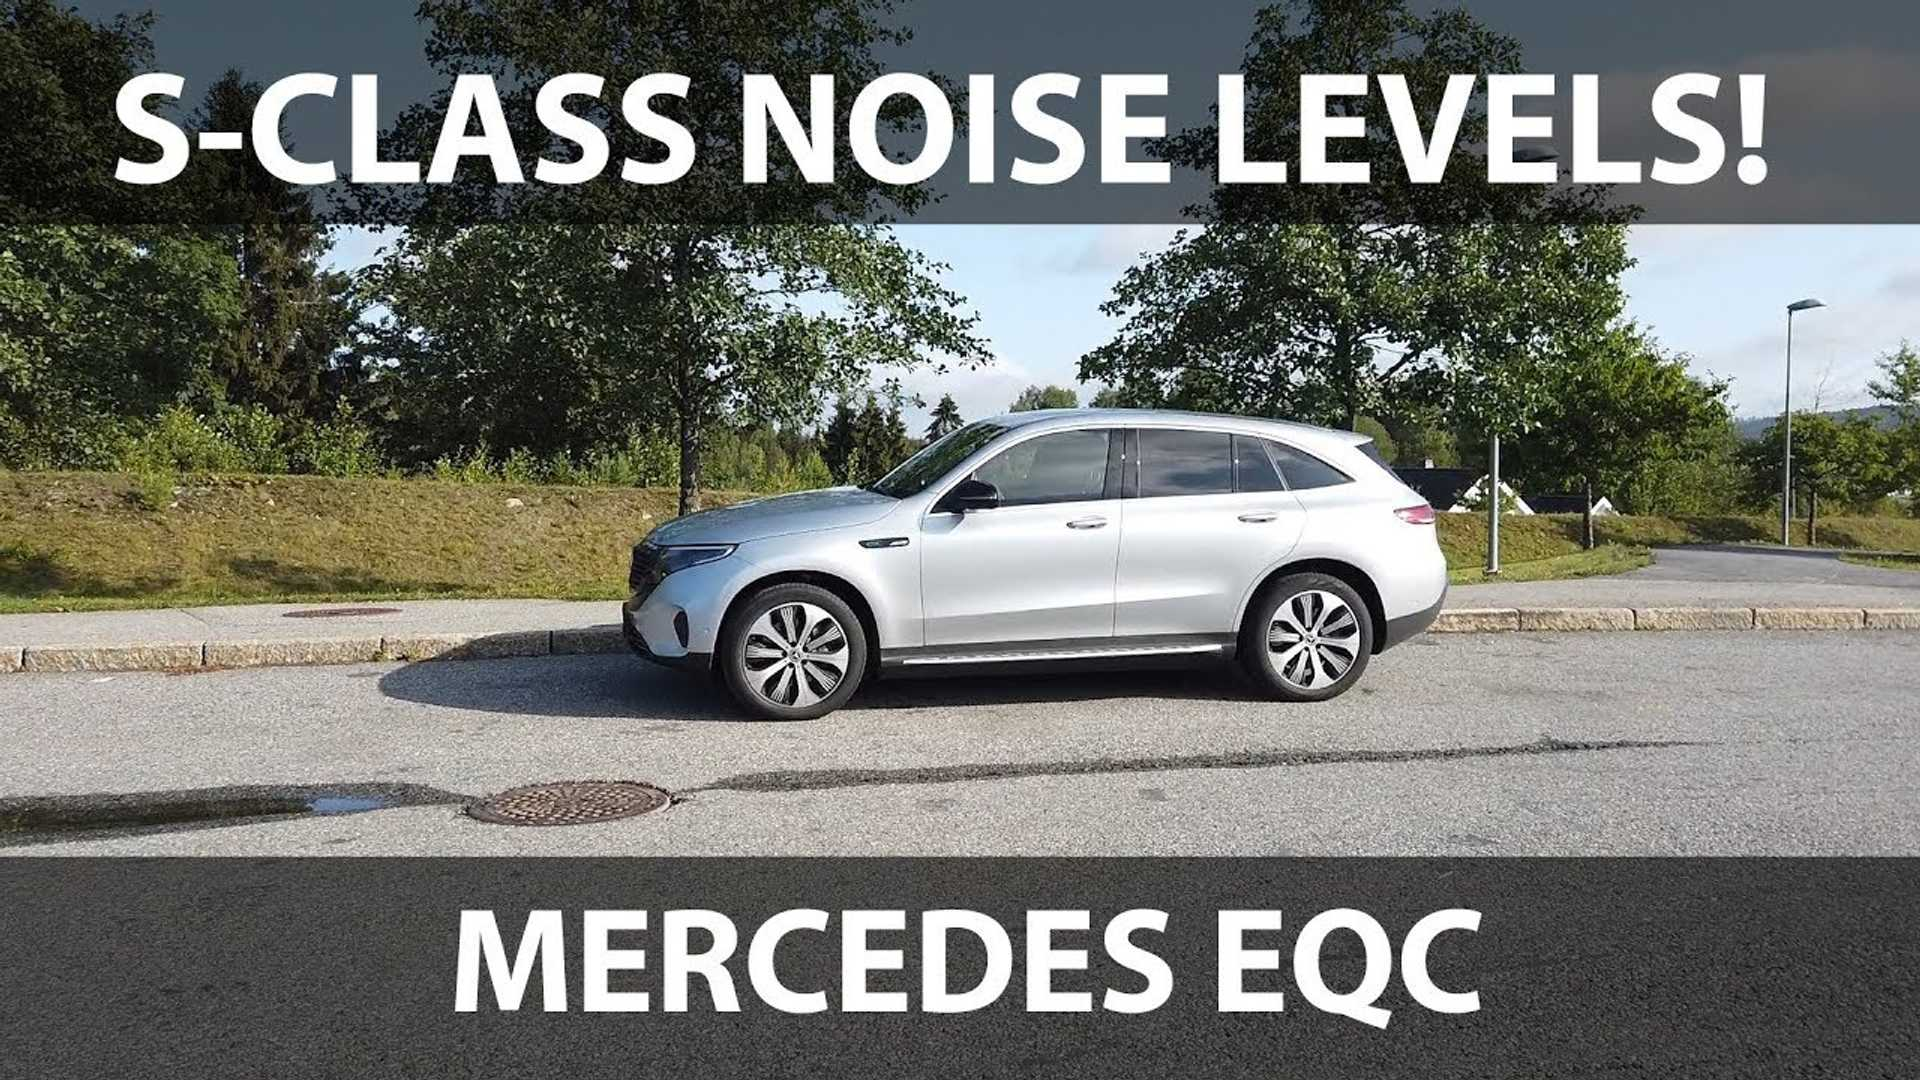 Mercedes-Benz EQC Is As Quiet As Audi e-tron, If Not Quieter